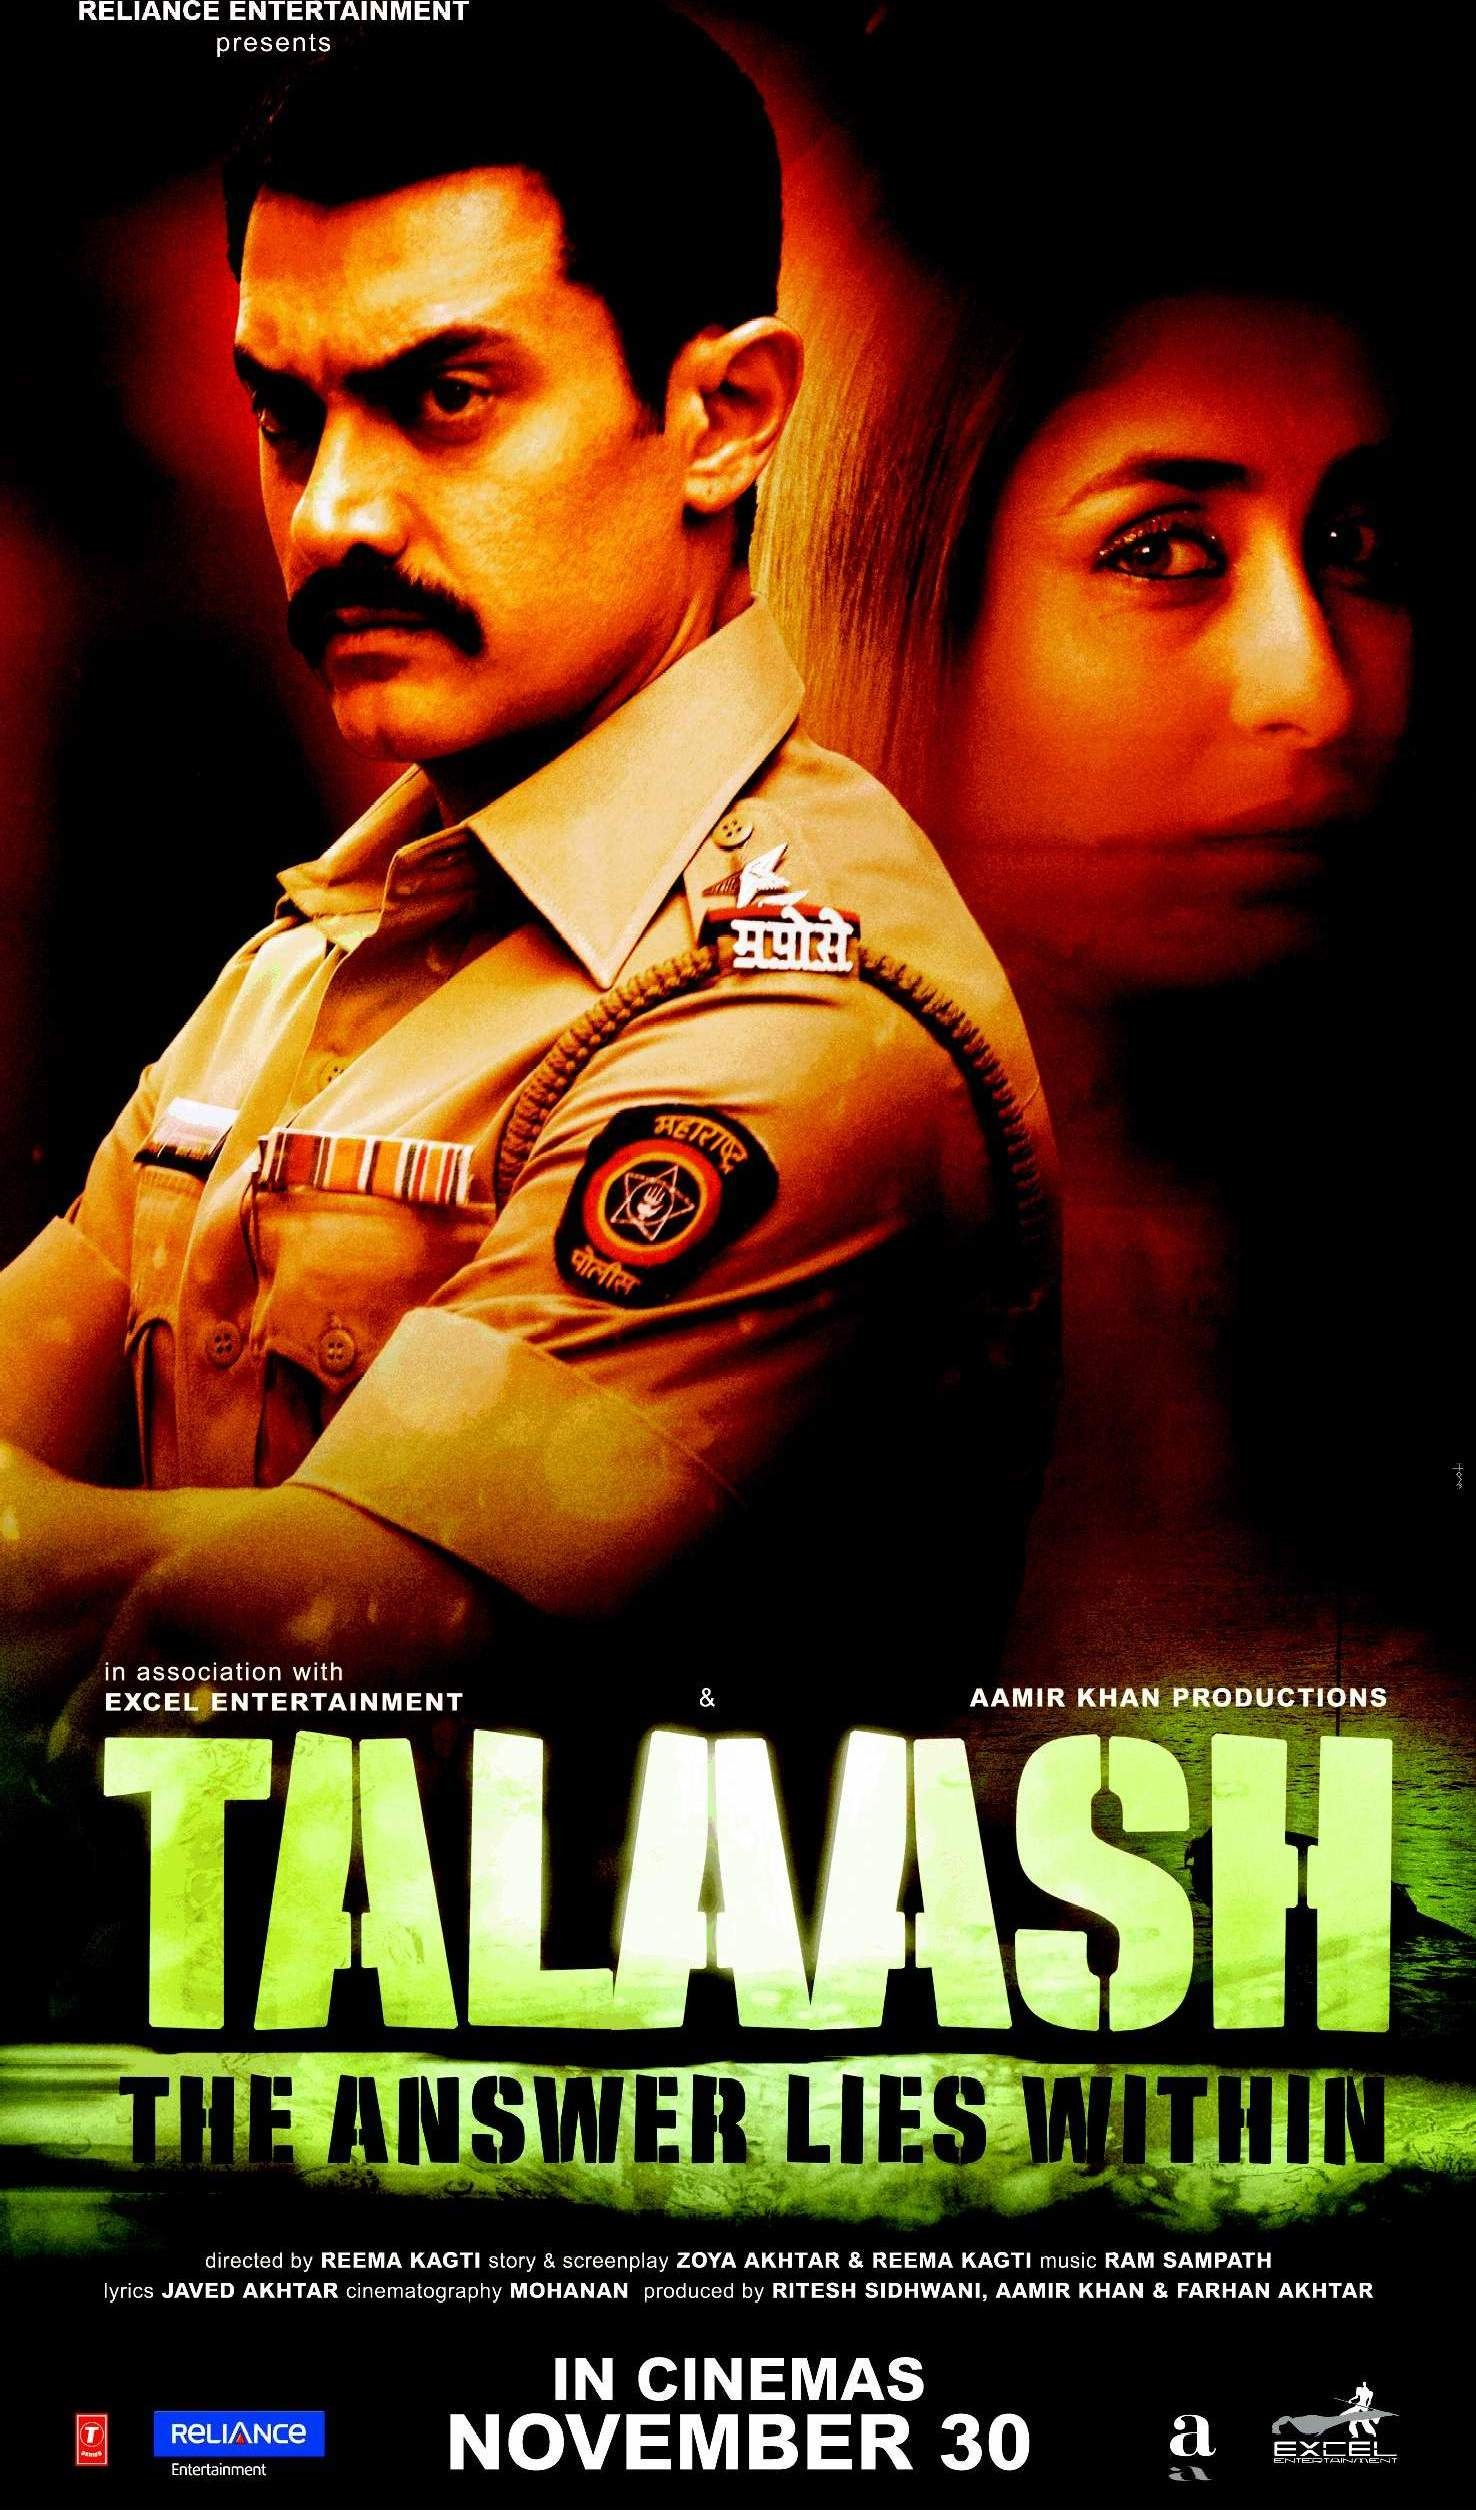 'Talaash: The answer lies within'